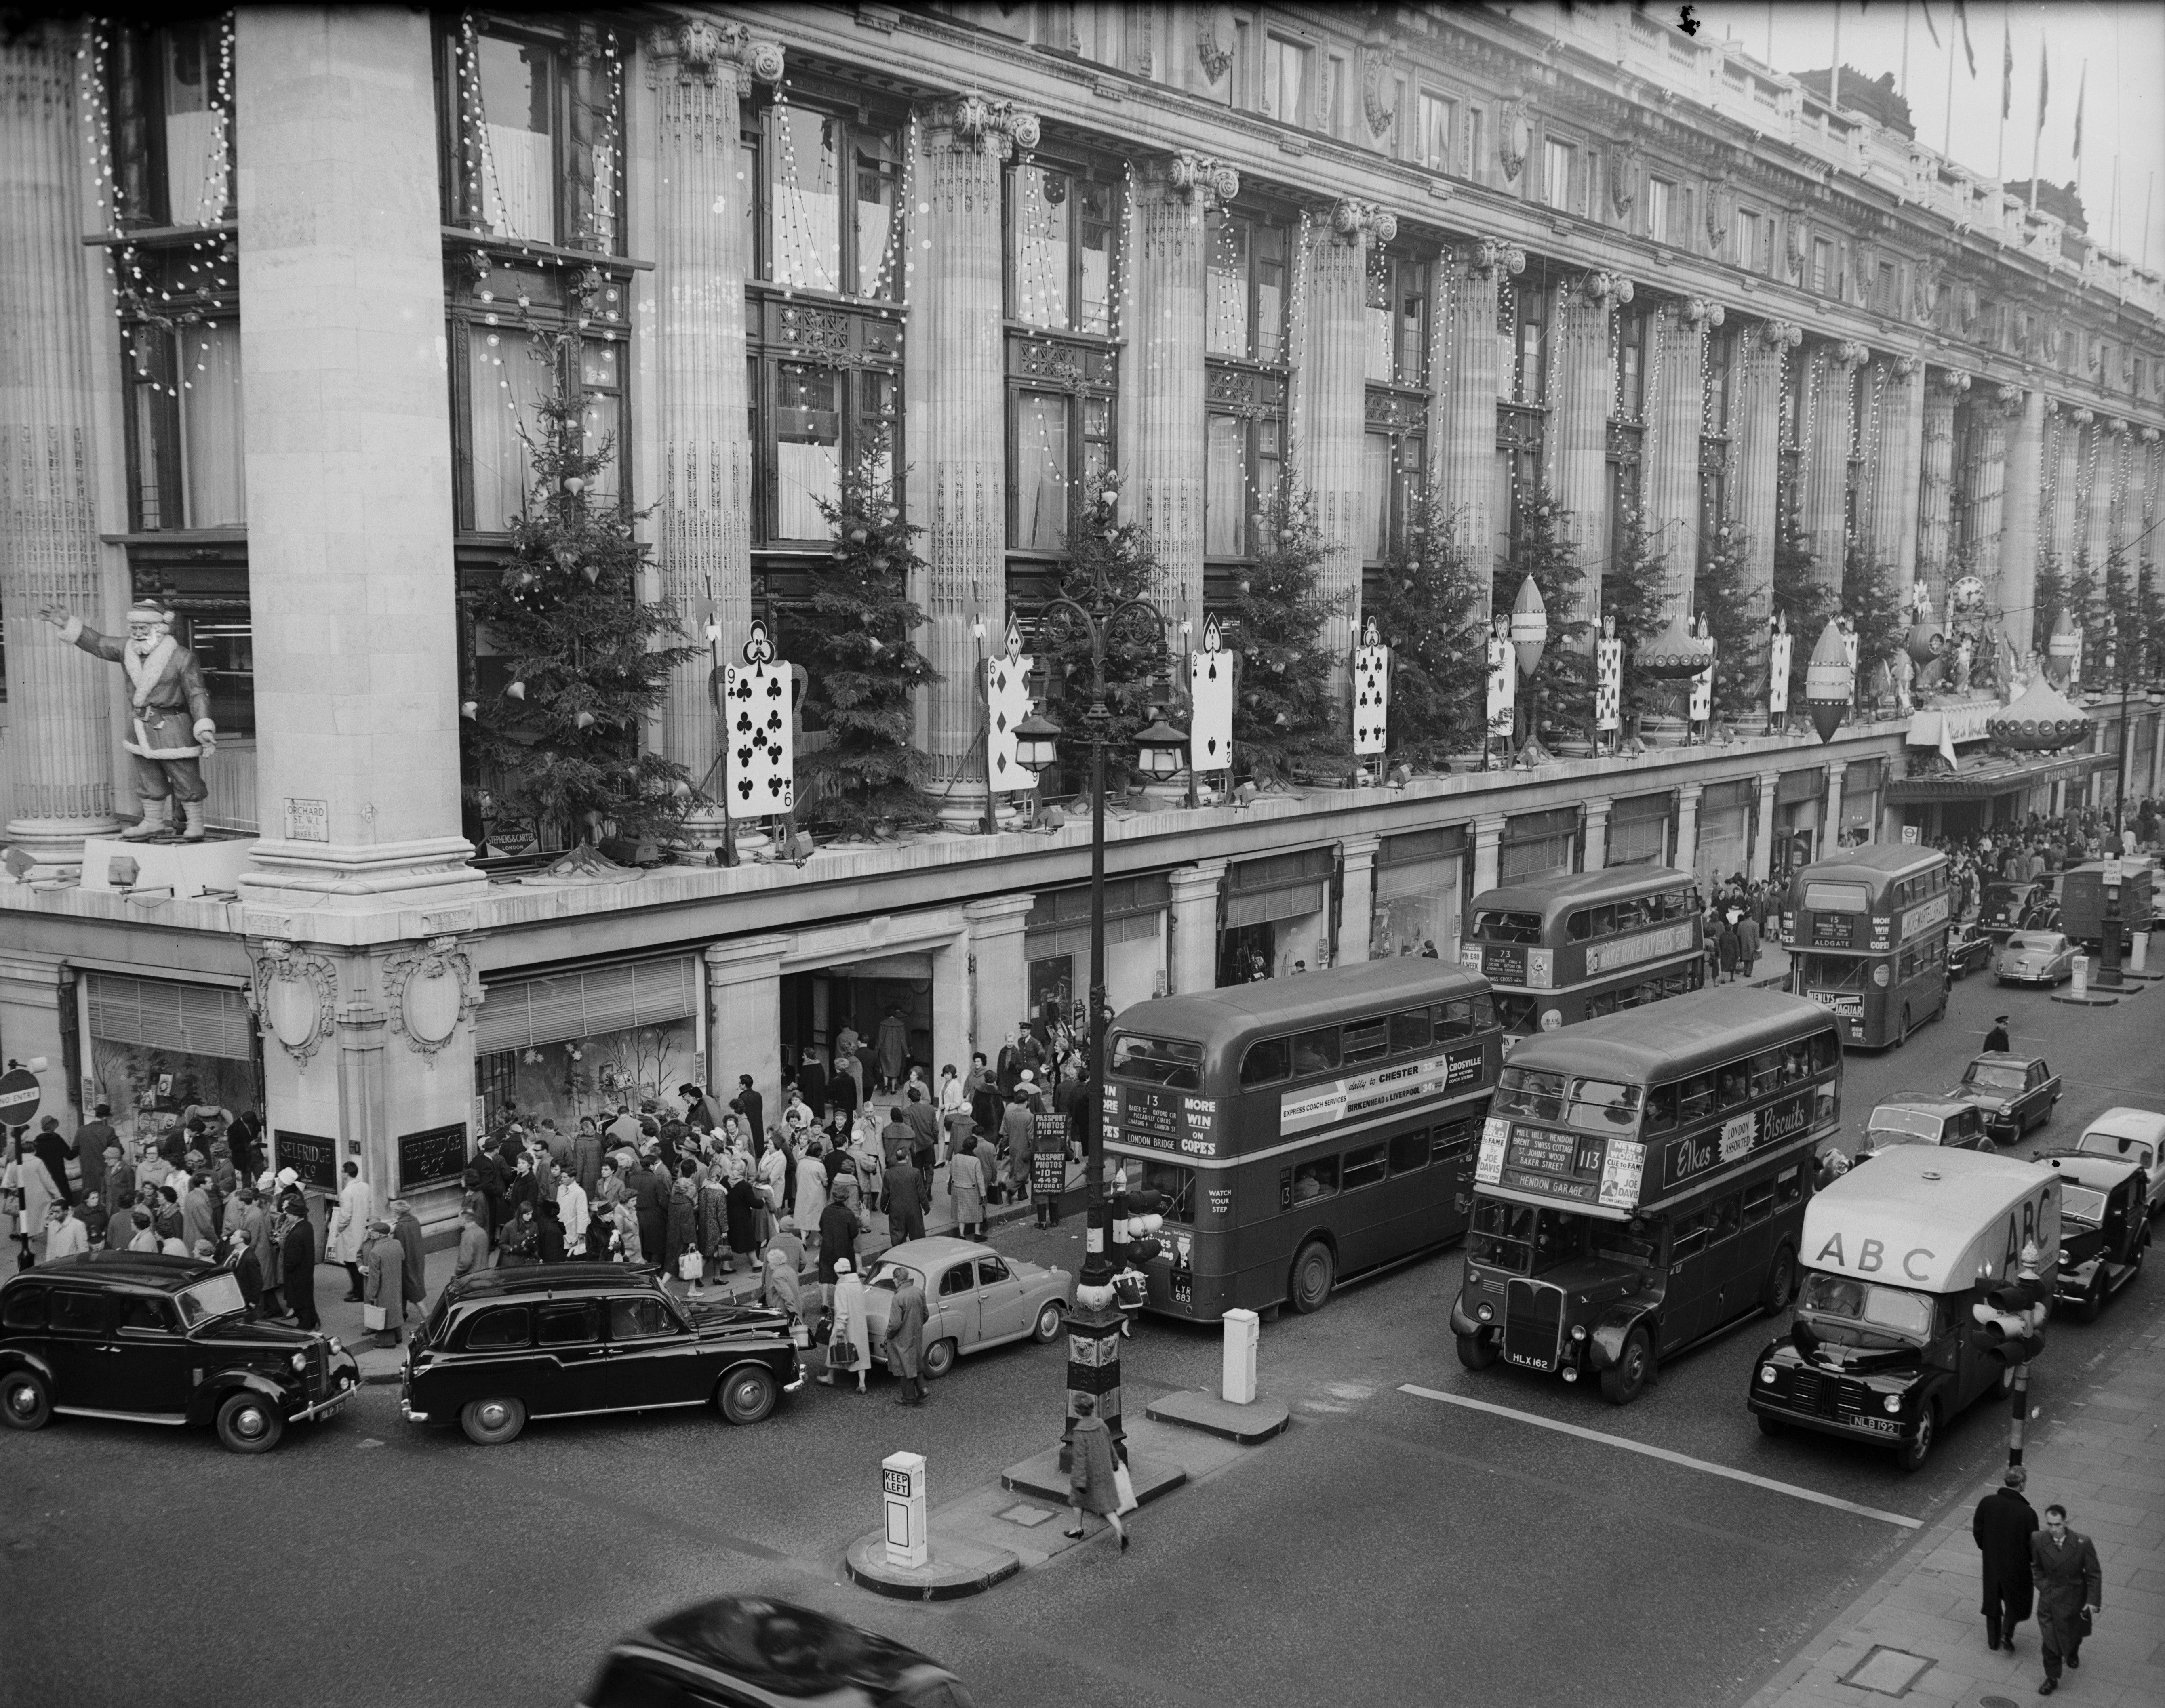 The women raided Selfridge's with hidden pockets in the their skirts and sleeves